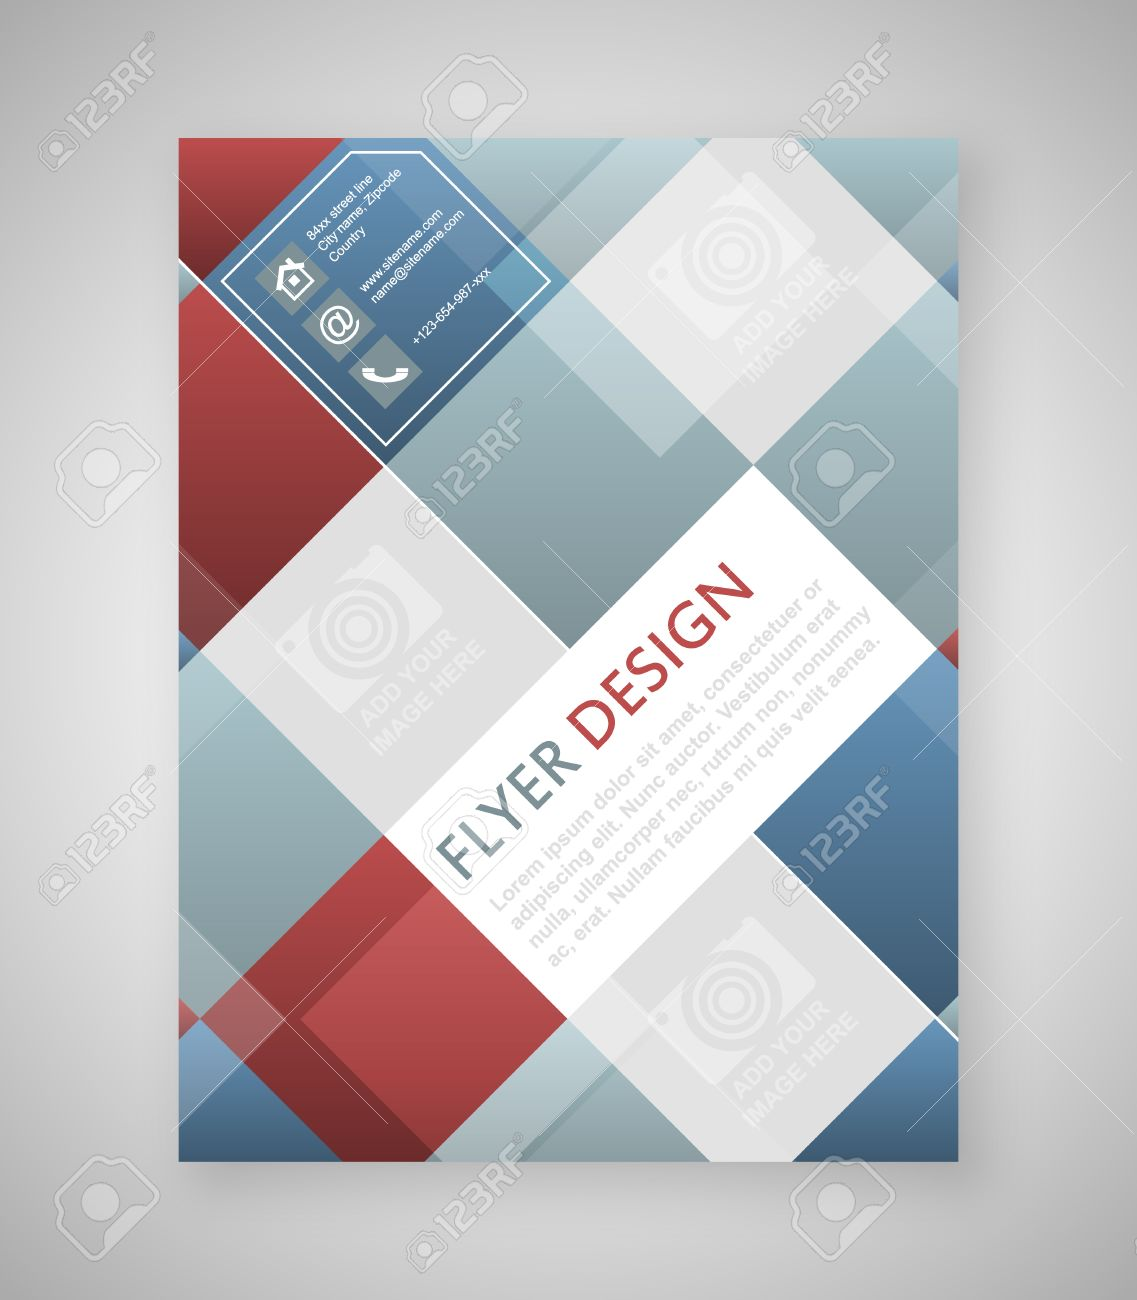 Geometric Flyer Template Design With Blue And Red Square Elements – Geometric Flyer Template